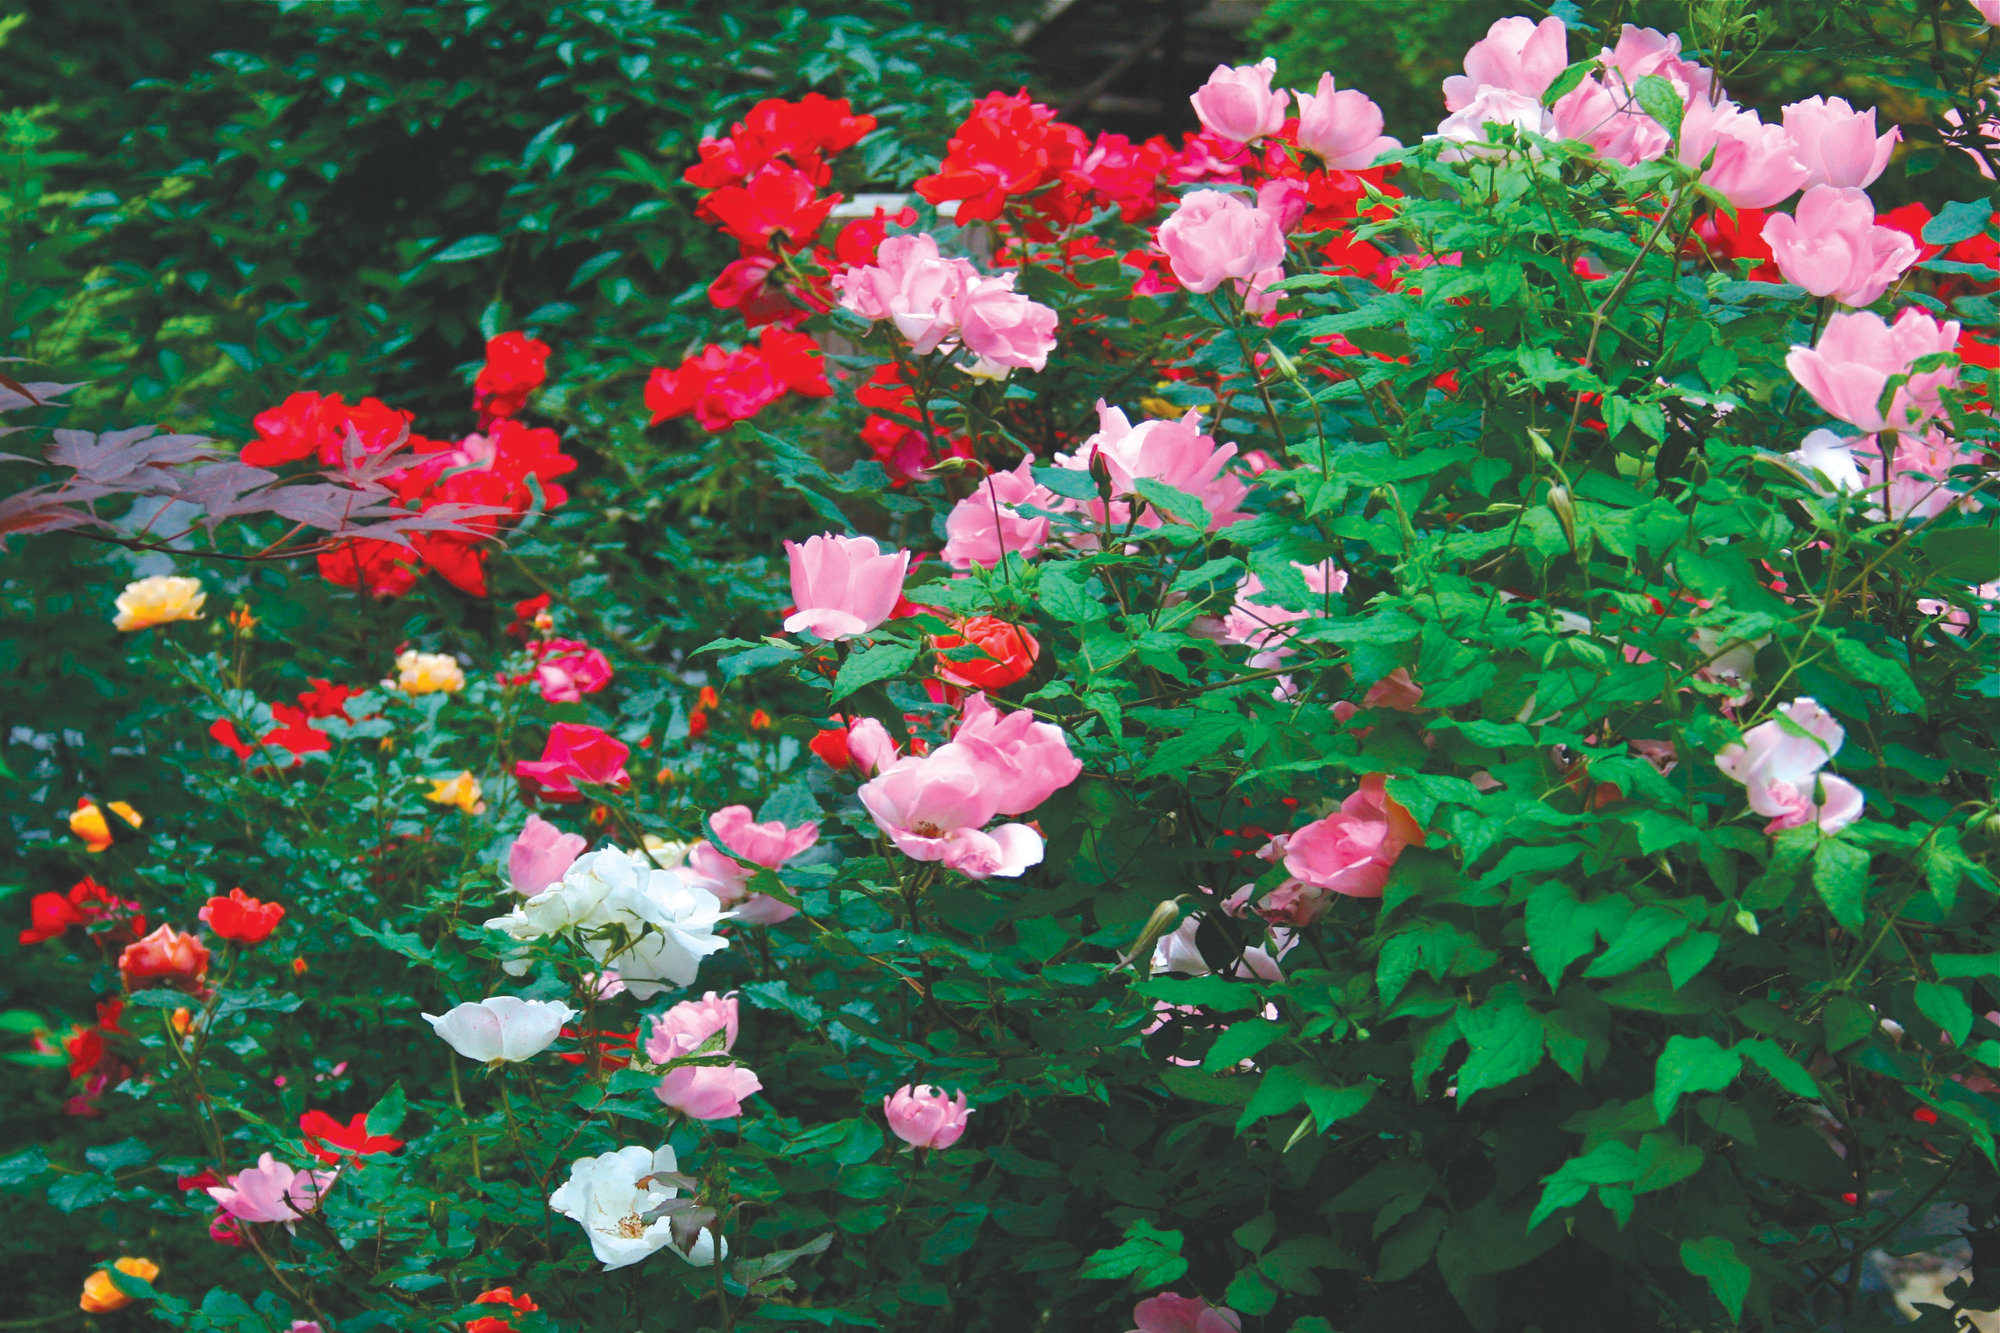 A variety of shrub roses in their third year are seen growing on a mountain property near New Market, Virginia, in 2010. While some rose varieties have earned a reputation for being fussy or difficult to grow, most of the newer shrub rose hybrids are disease resistant, carefree and repeat blooming.